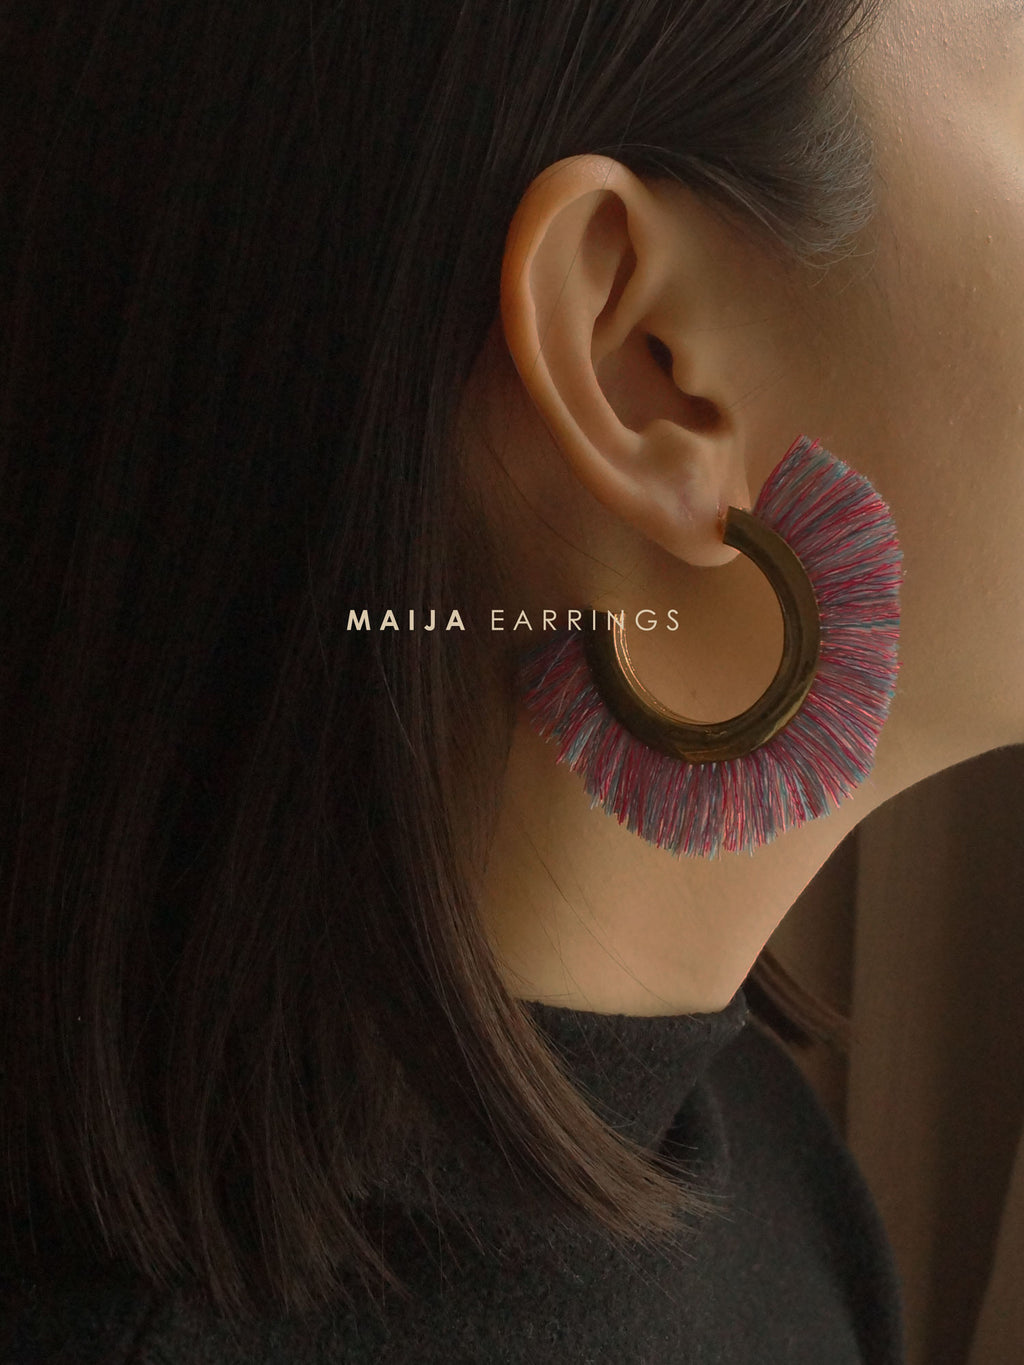 Maija Earrings